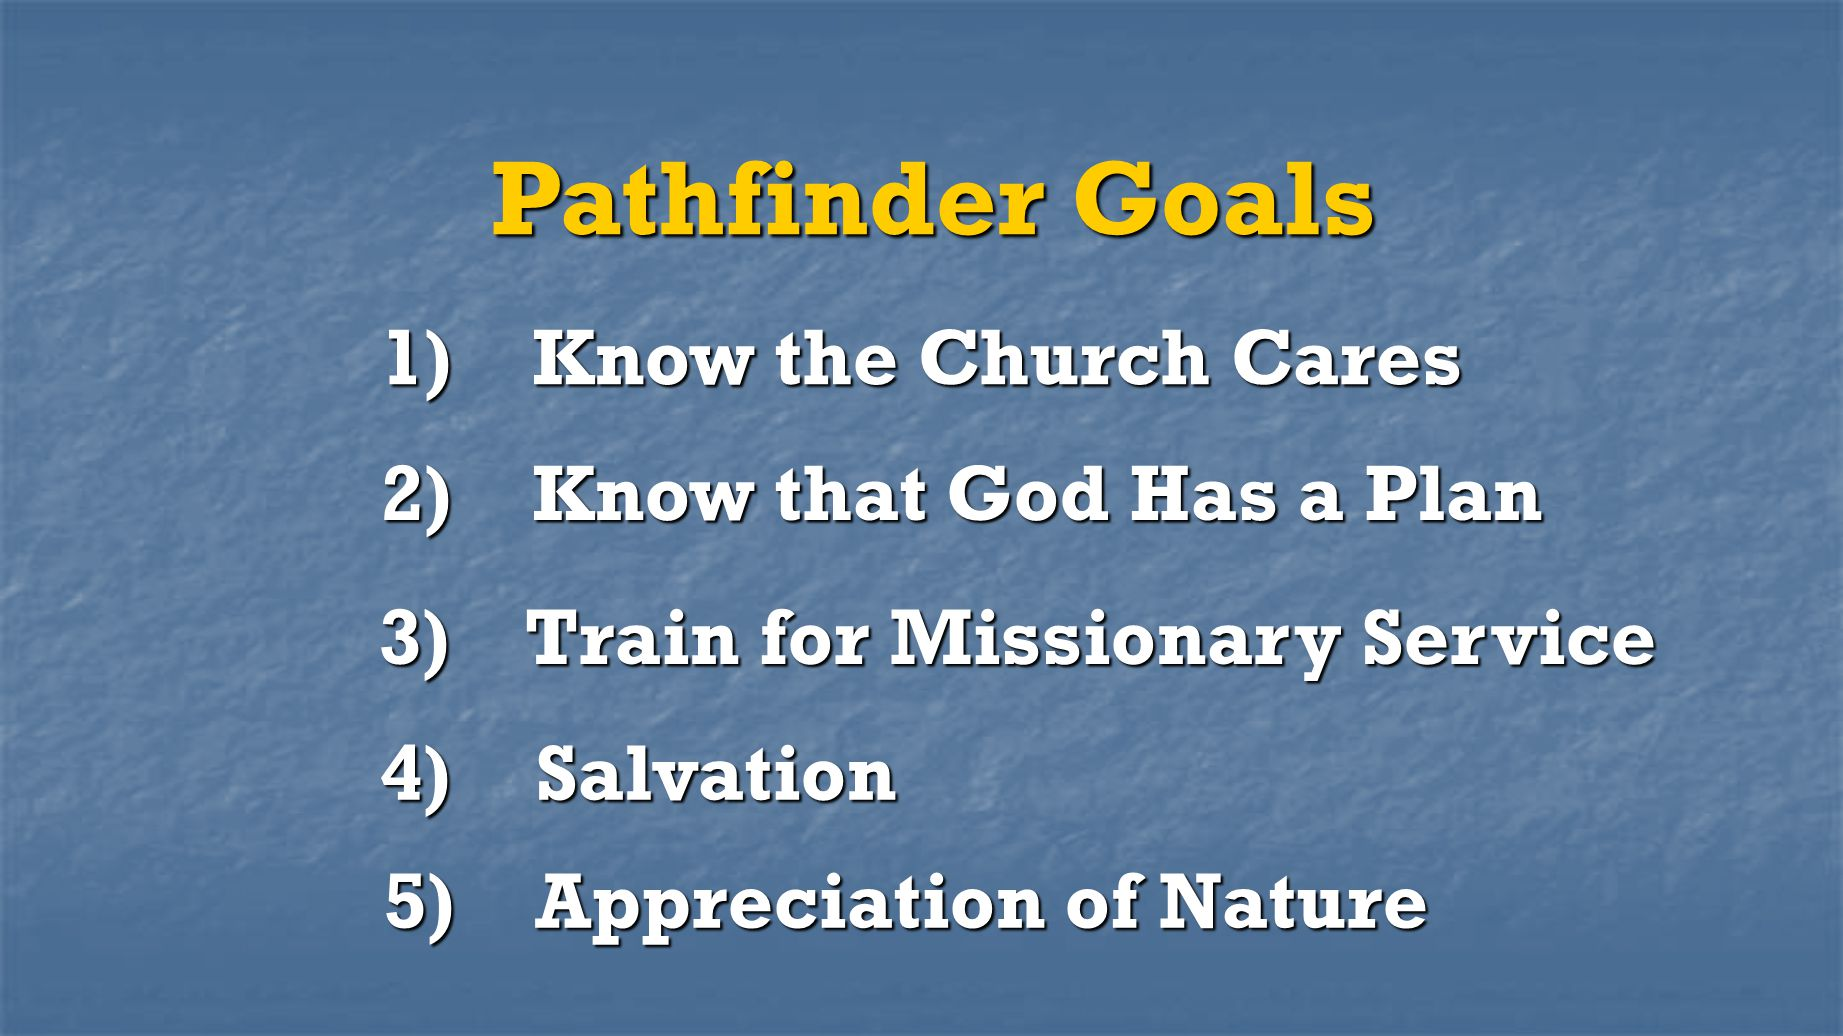 Pathfinder Goals 1) Know the Church Cares 2) Know that God Has a Plan